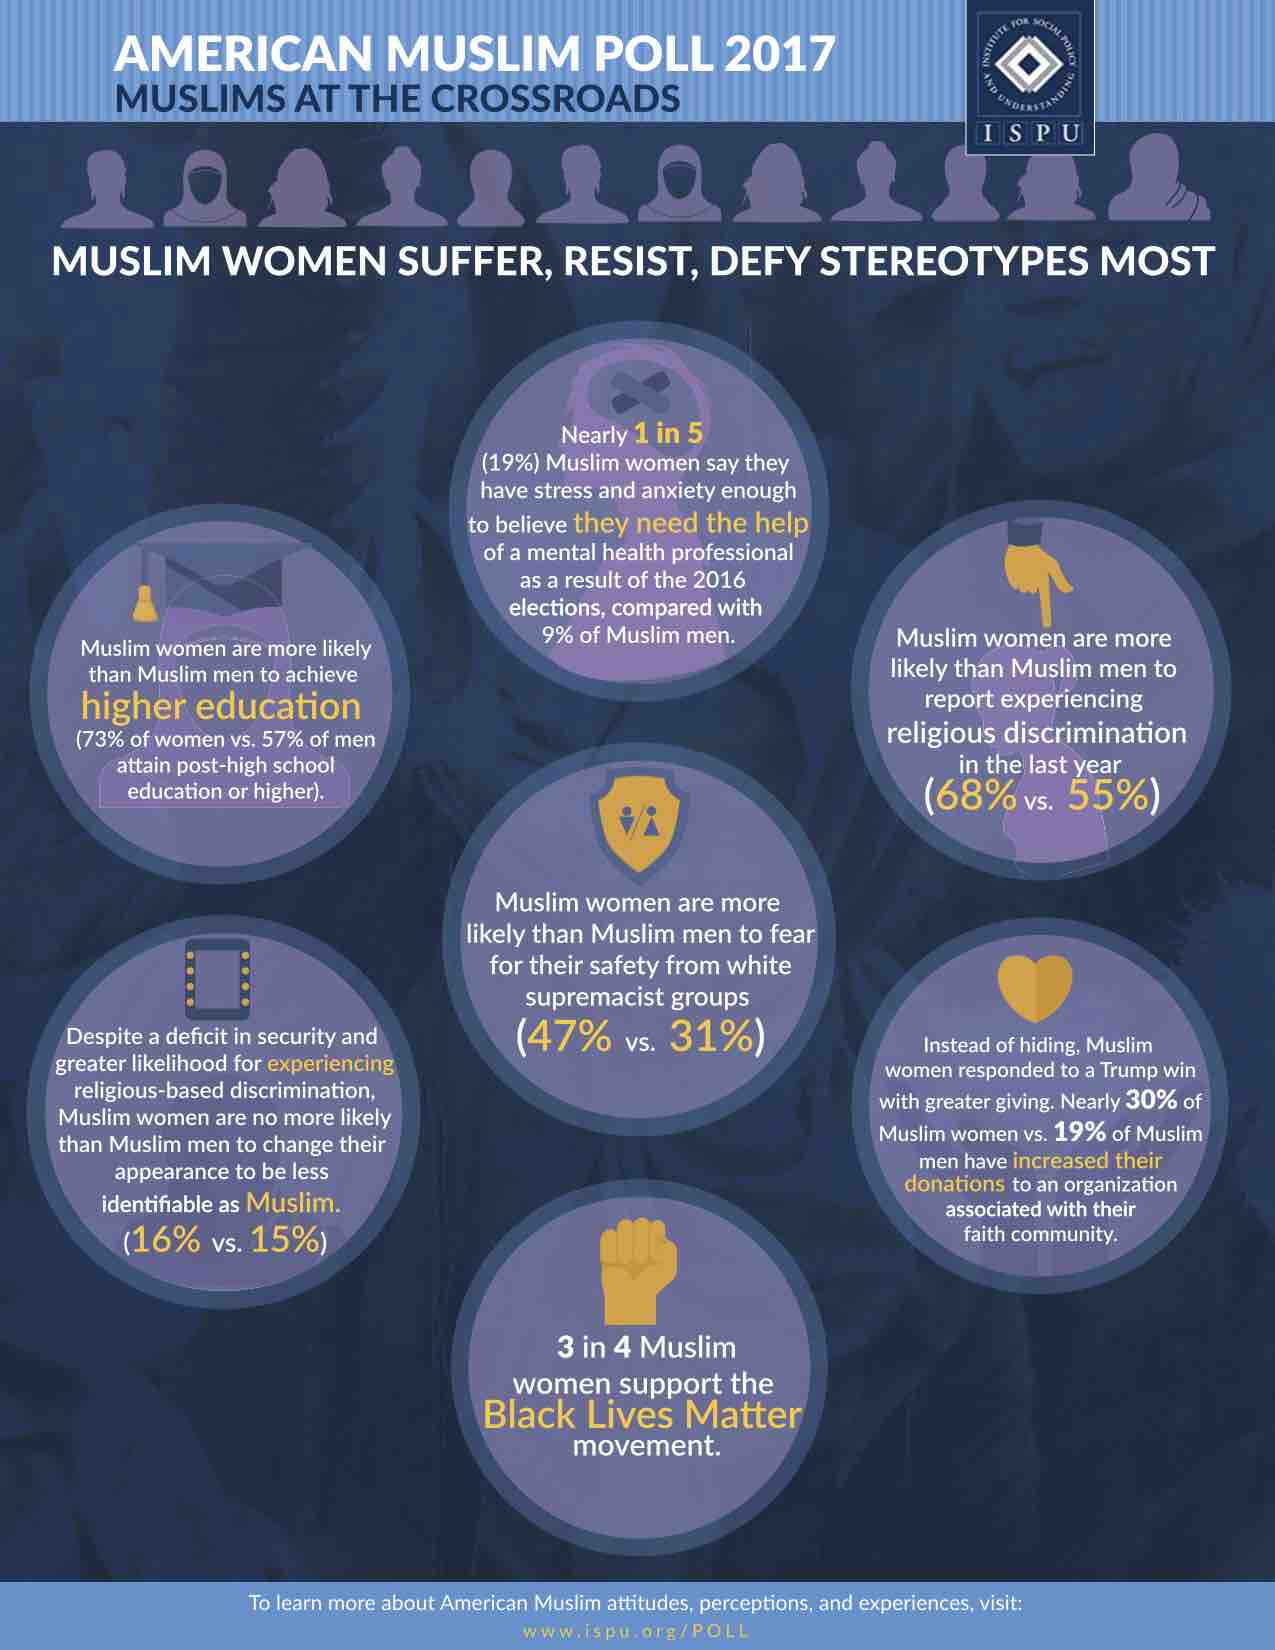 Infographic showing Muslim Women Suffer, Resist, Defy Stereotypes Most